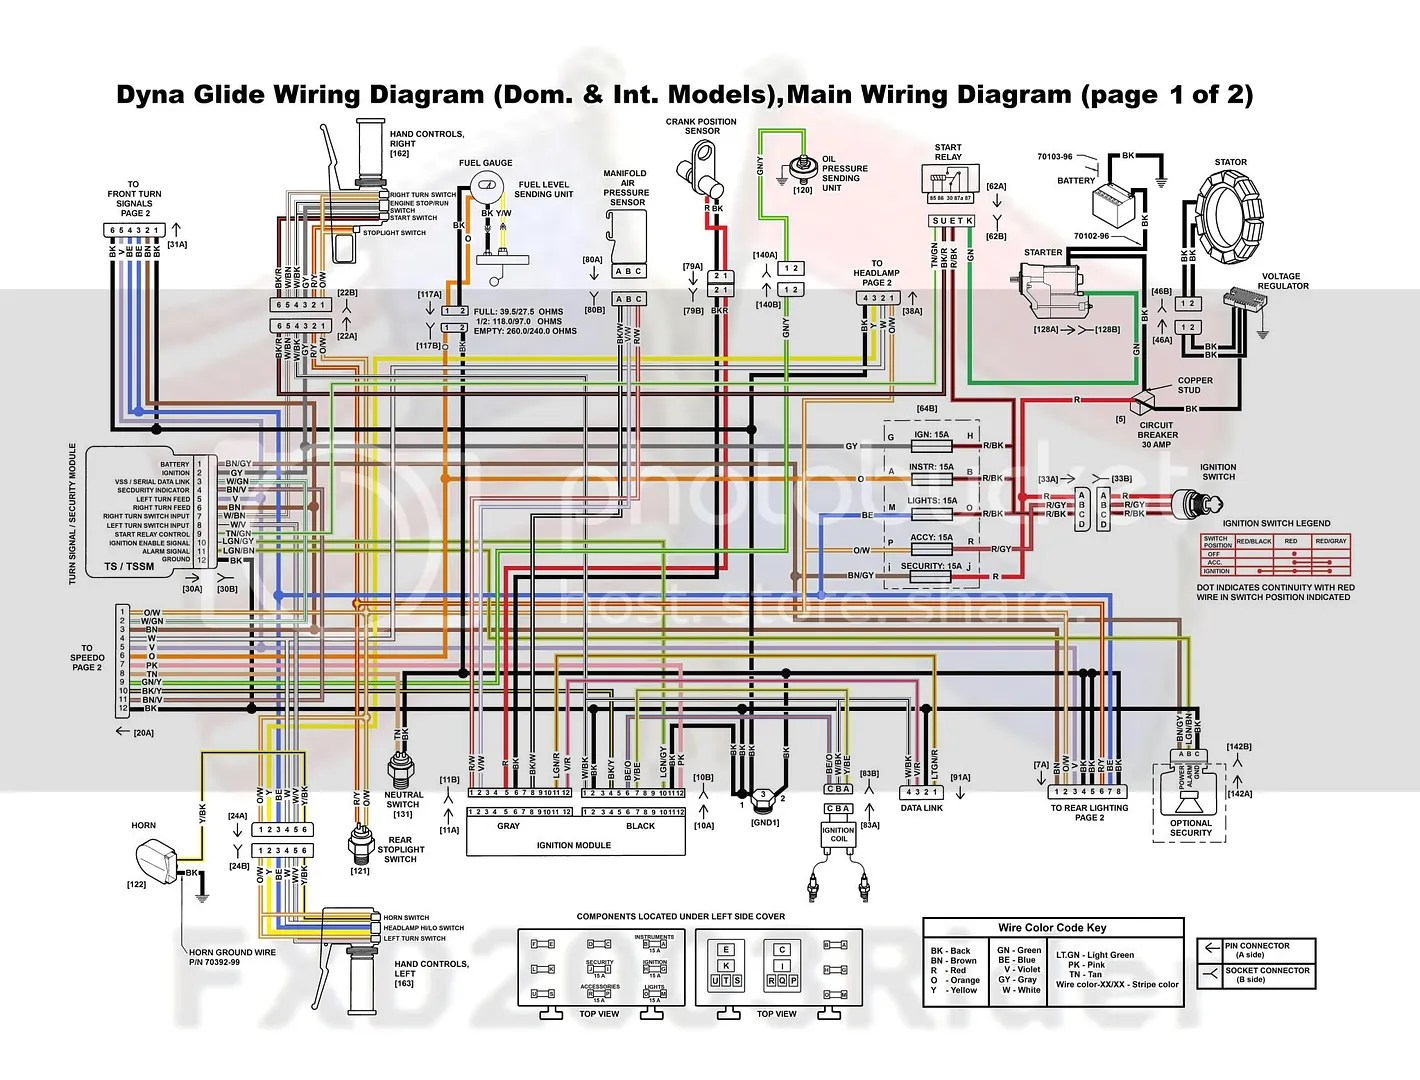 Harley Softail Wiring Diagram For Wp105 Wiring Diagram System Stale Locate A Stale Locate A Ediliadesign It